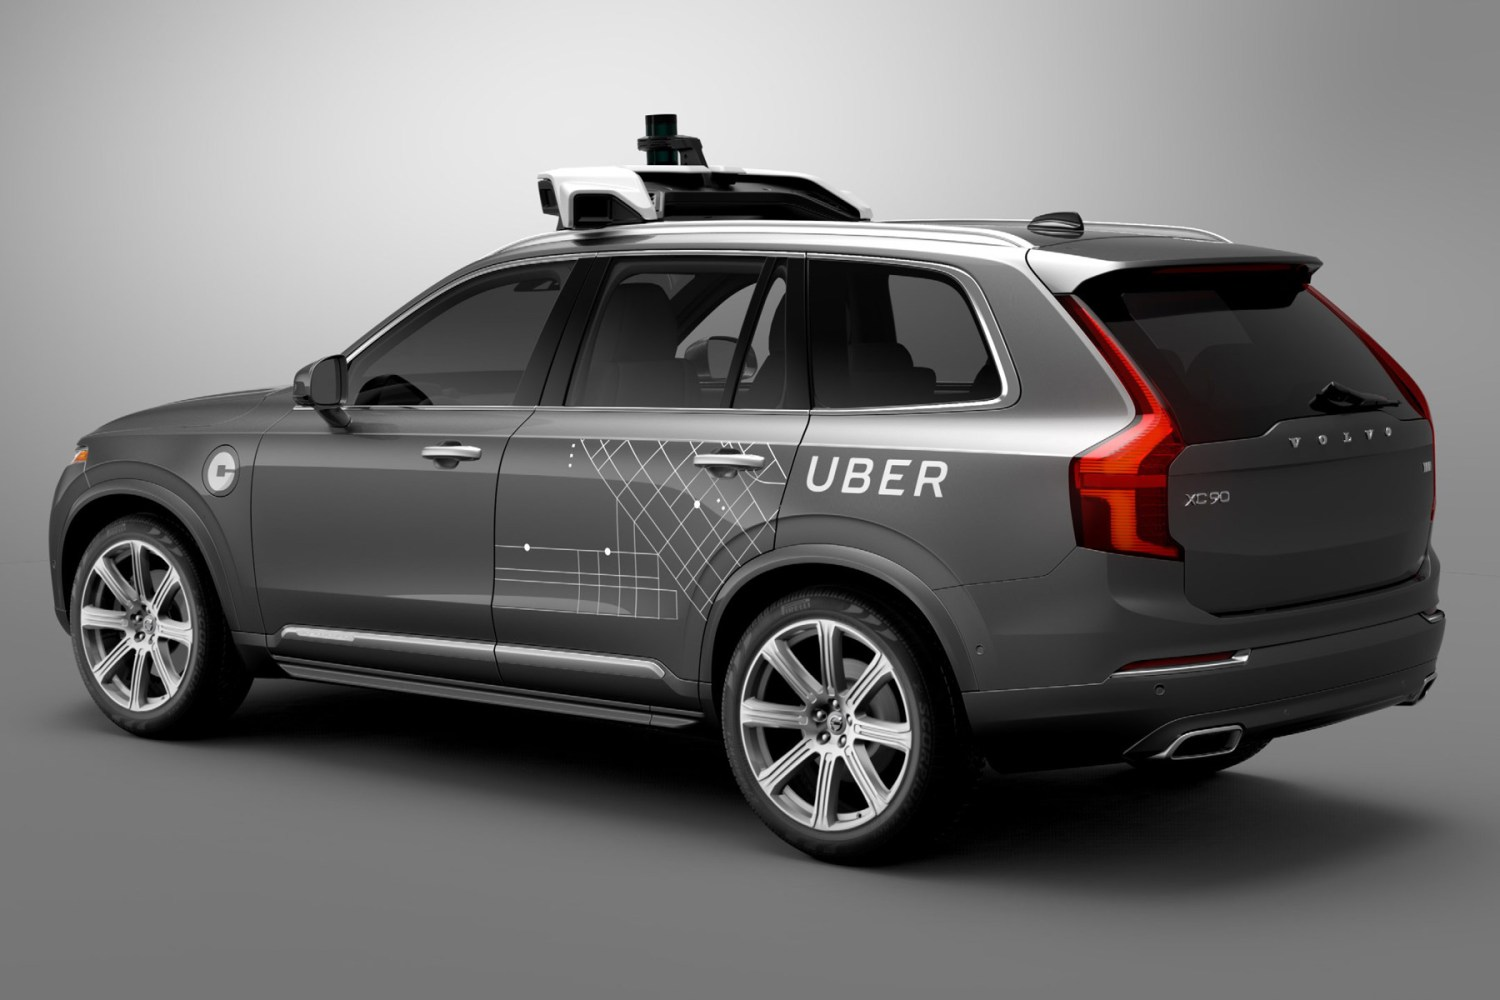 Uber is mapping UK roads ready for launching driverless cars